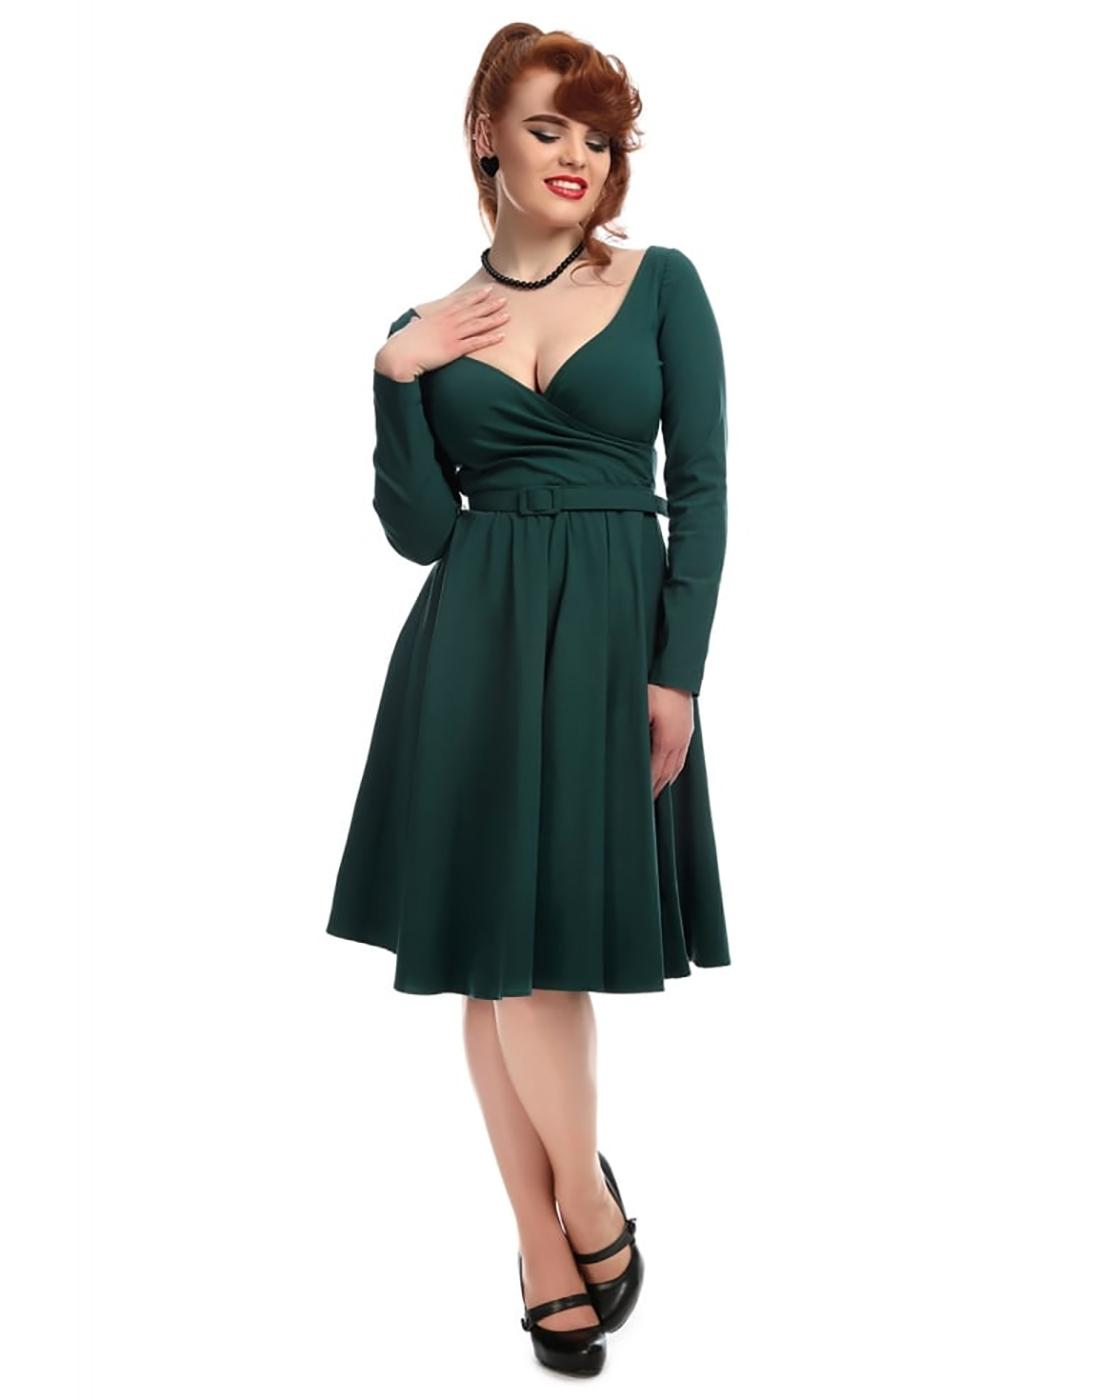 collectif-nicky-doll-dress-teal1.jpg